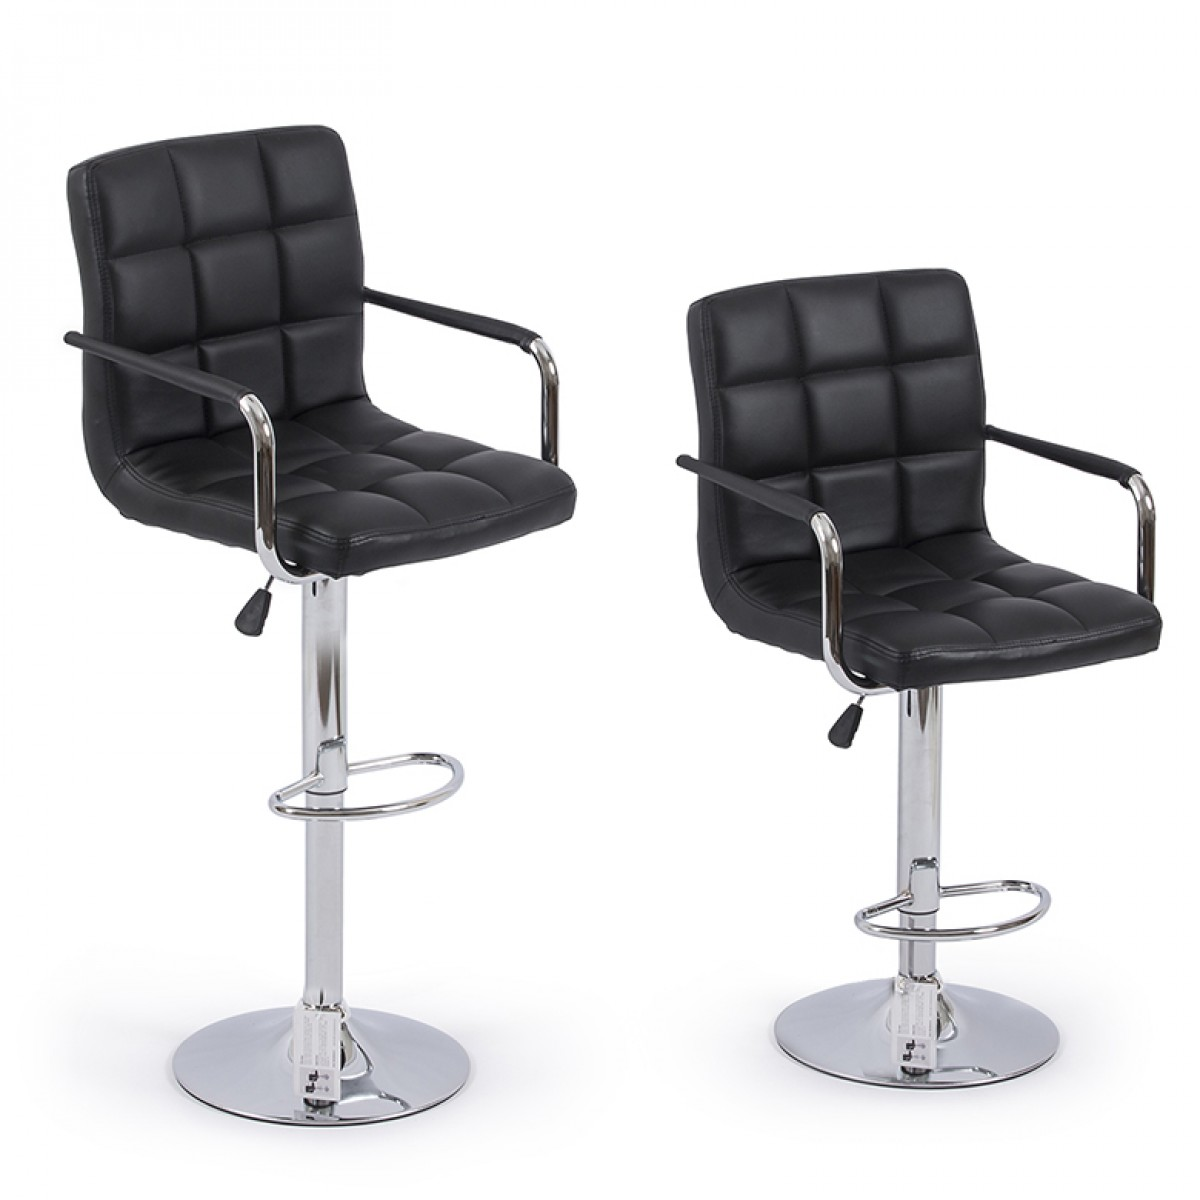 Prime Details About 2Pc Black Pu Leather Adjustable Height Swivel Bar Stool With Arms Chrome Base Ncnpc Chair Design For Home Ncnpcorg